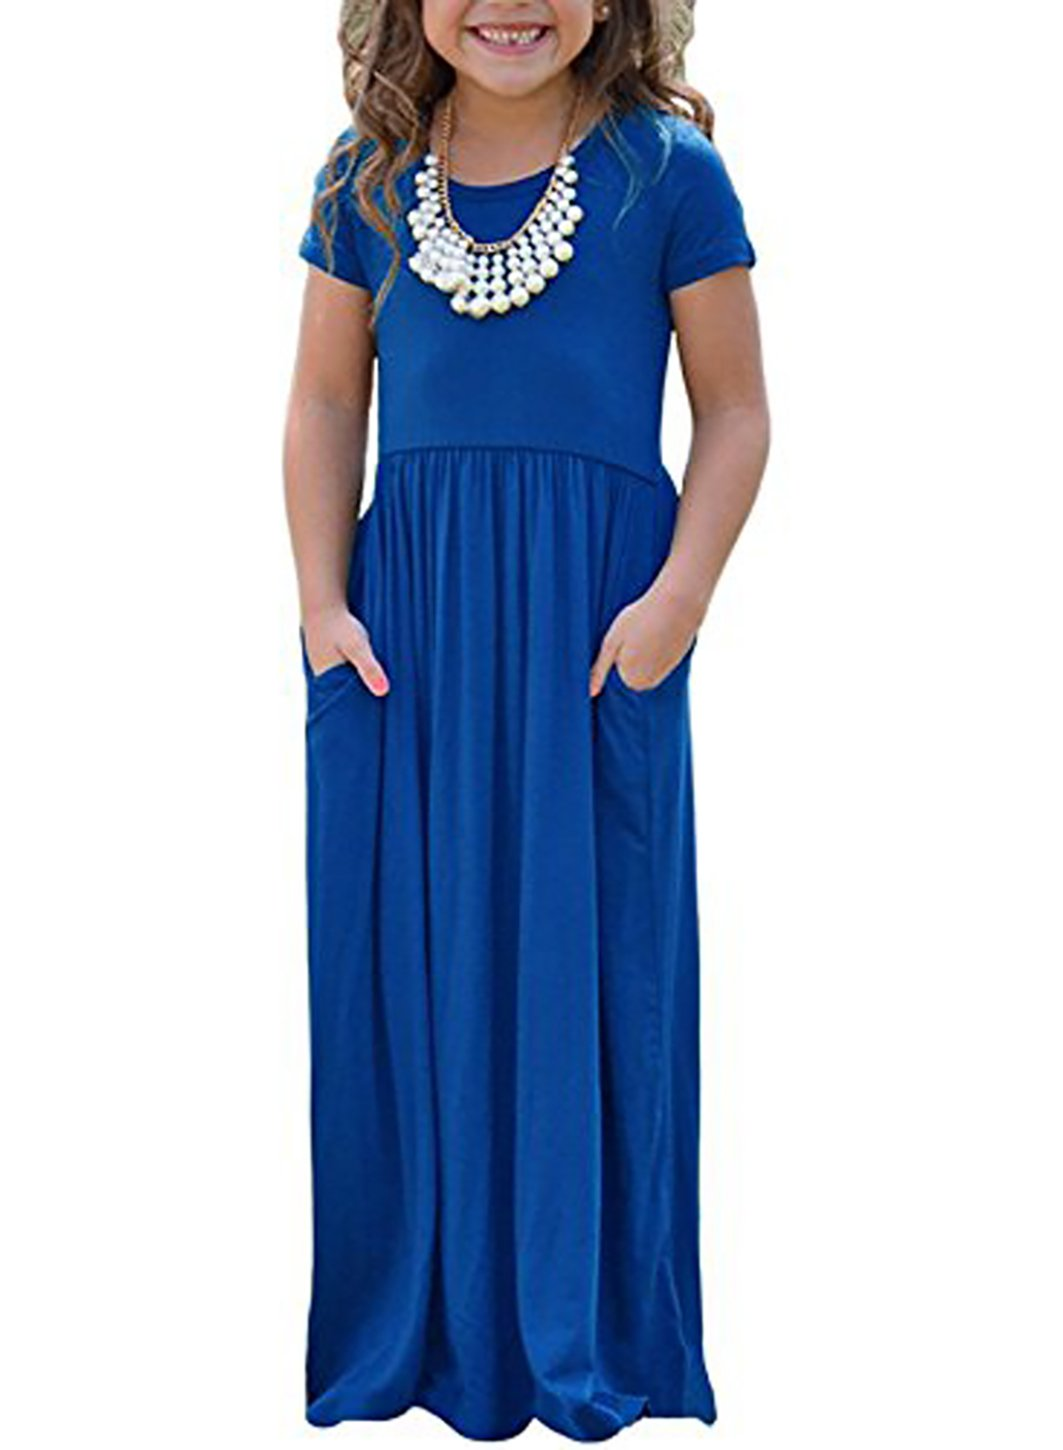 STKAT Girl's Summer Short Sleeve Round Neck Pockets Solid Color Casual Long Maxi Dress,X-Large,Blue